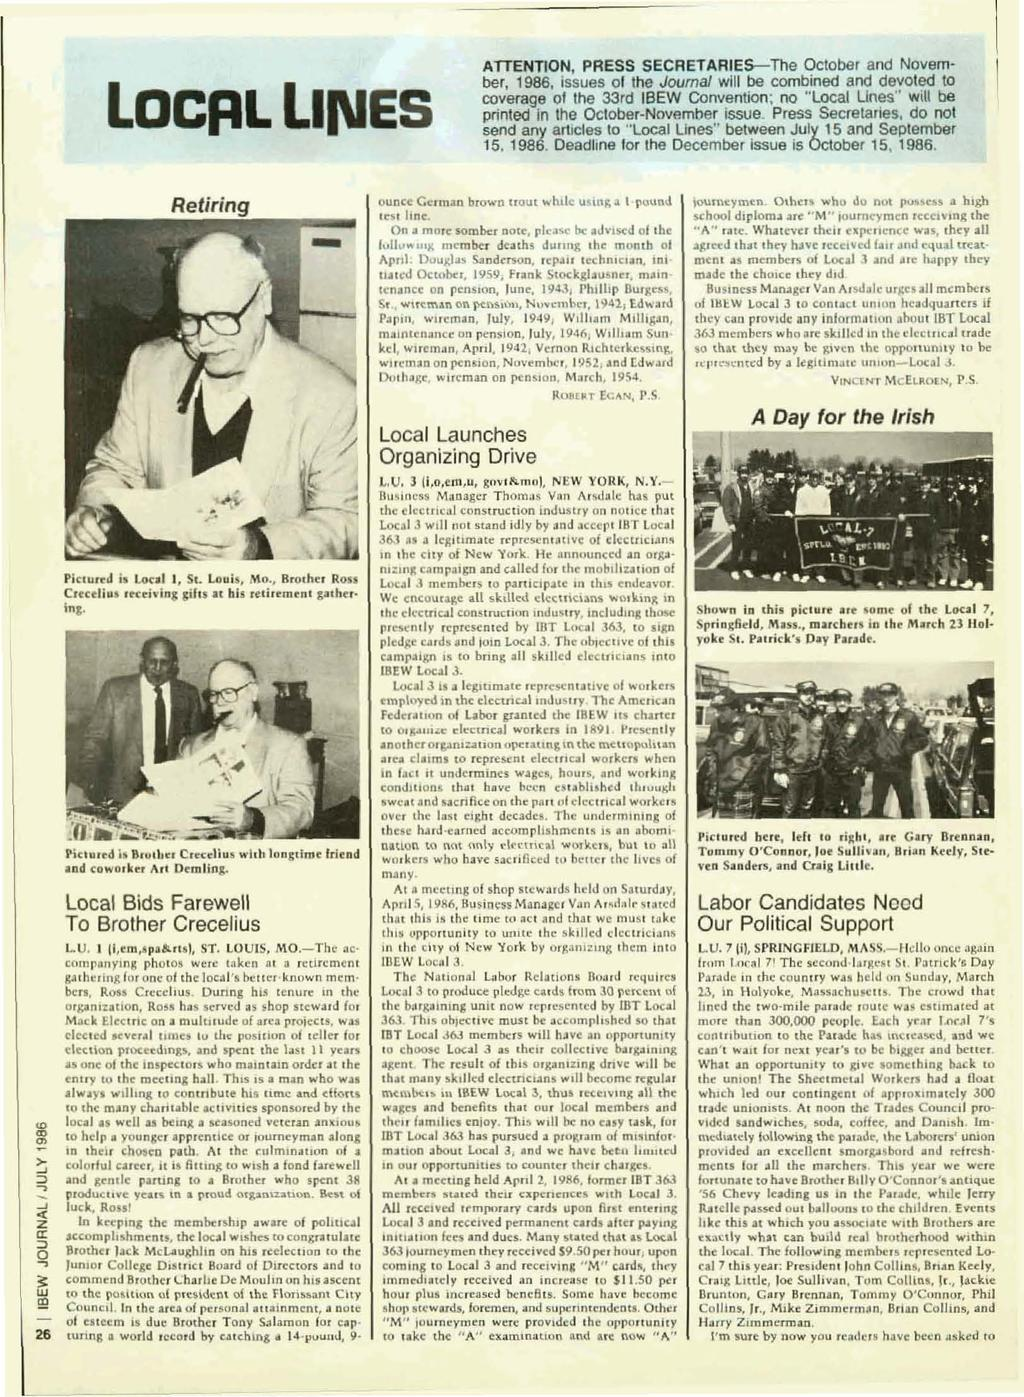 "LOCRL LII\IES ATTENTION, PRESS SECRETARIES-The October and Novem ber, 1986, Issues of the Journal will be combined and devoted to coverage of the 33rd fsew Convention; no ""Local Unes"" wtlt be printed"